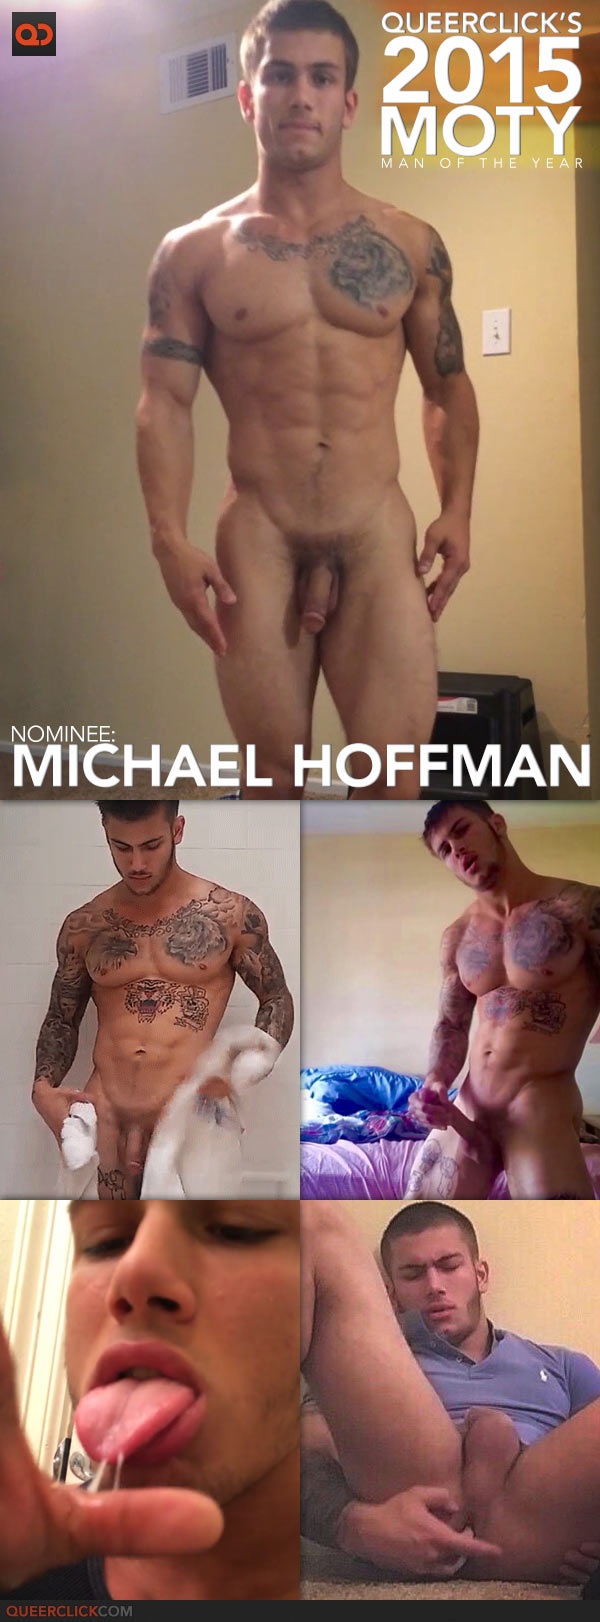 QueerClick's 2015 Man of the Year! Michael Hoffman